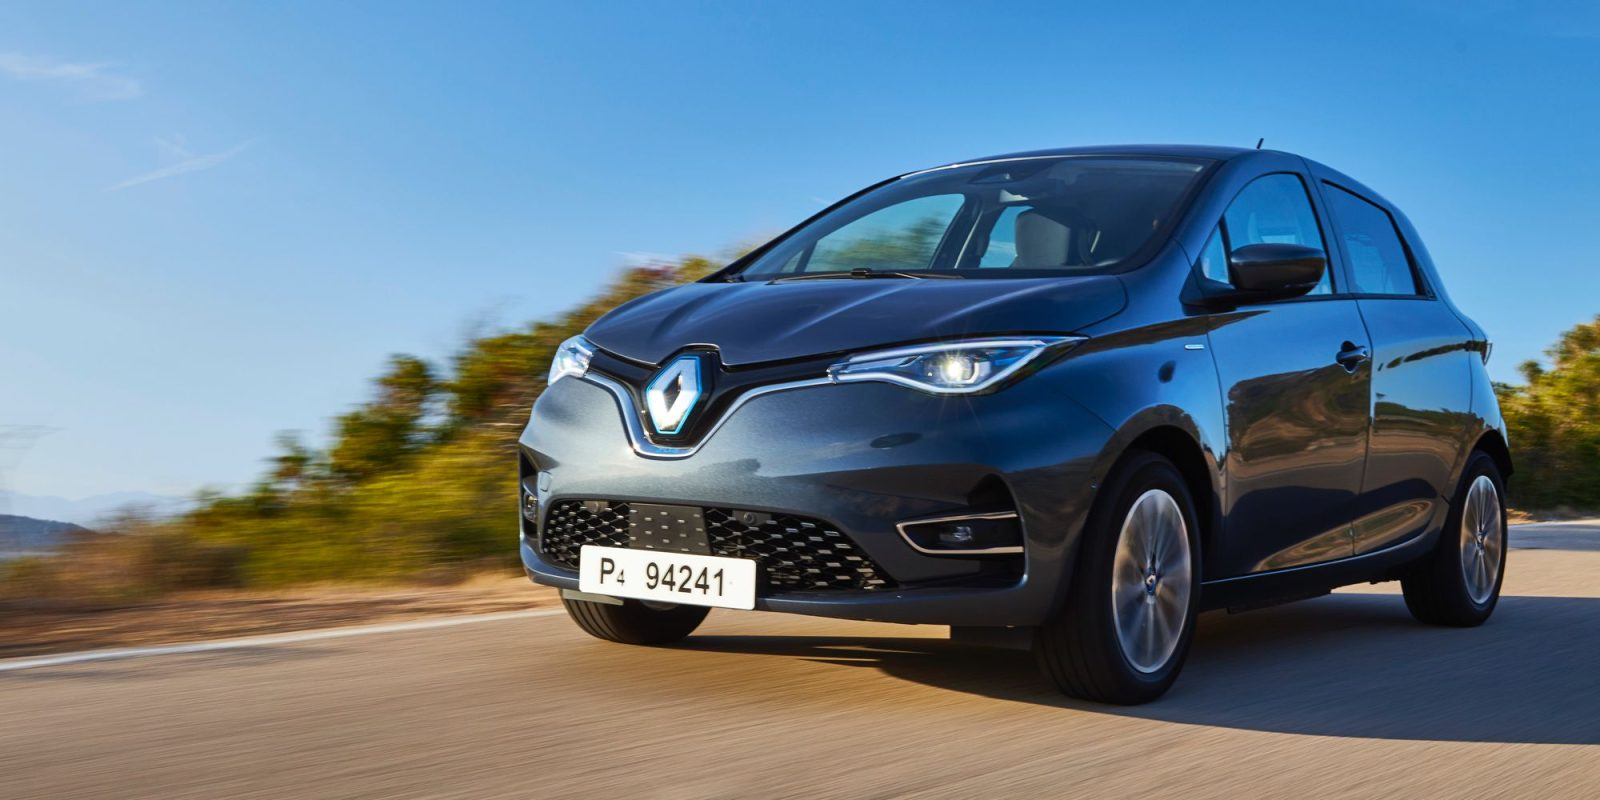 Test driving the new Renault Zoe: More power, range, and charging options